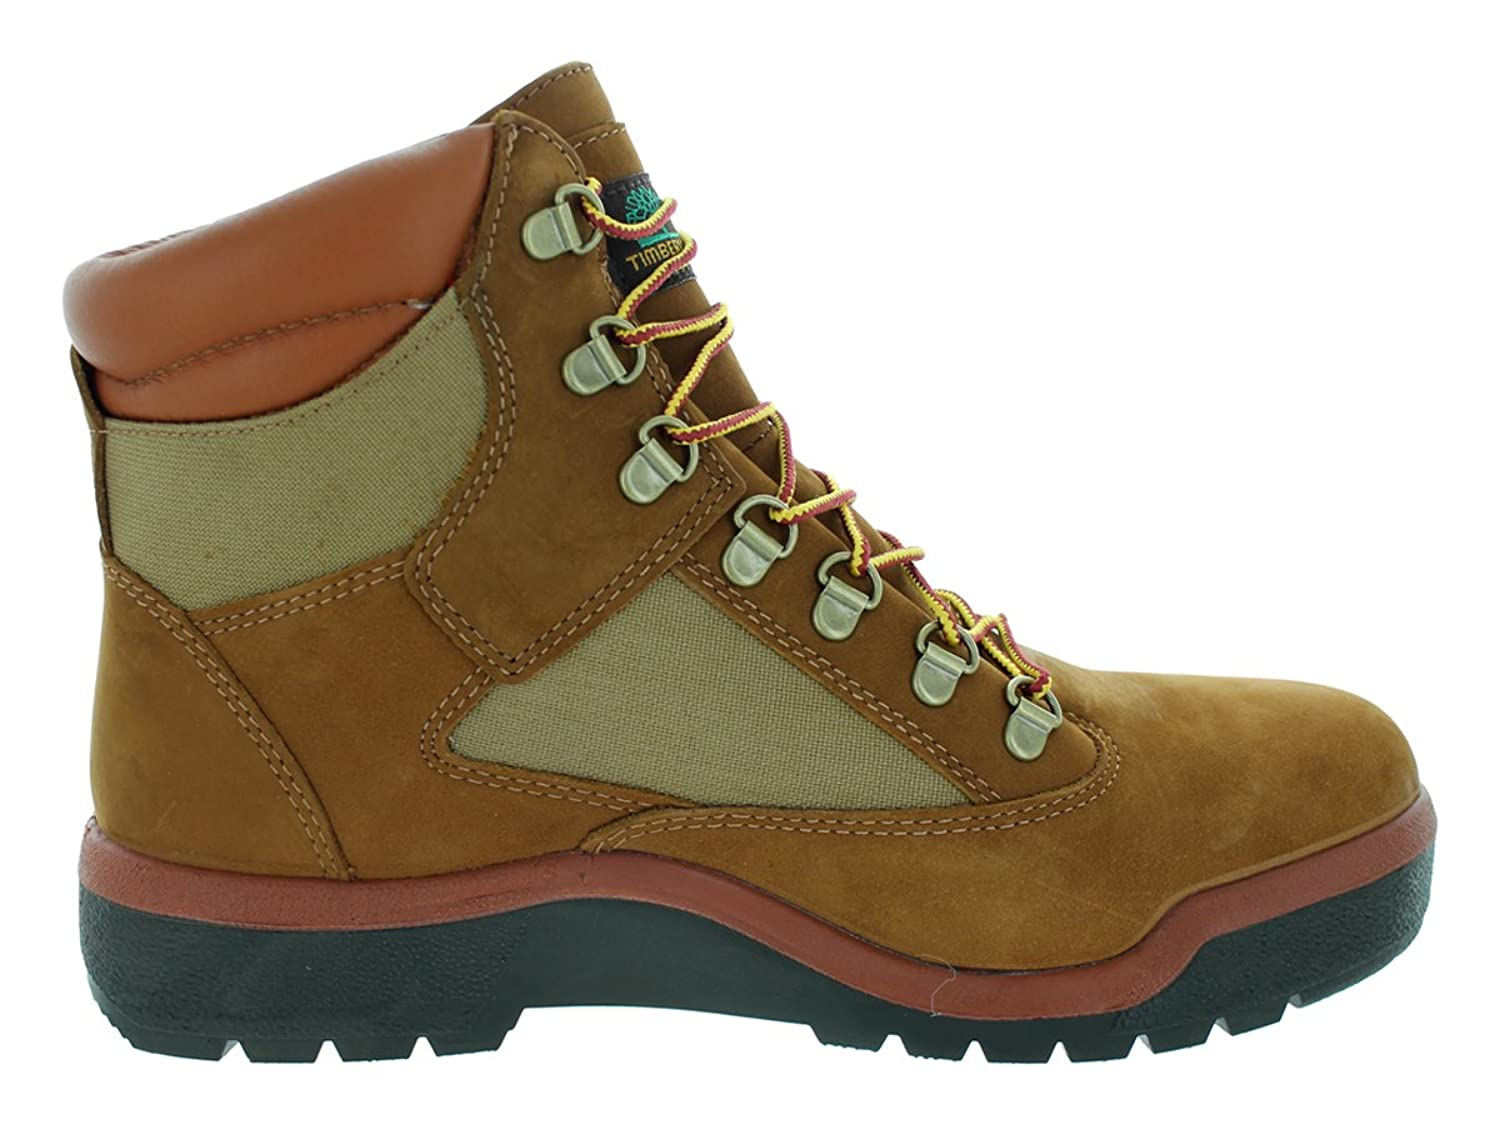 Timberland Men's Icon 6 inch Nongtx Fb Boot Lt Brown 7.5 D(M) US: Buy  Online at Low Prices in India - Amazon.in